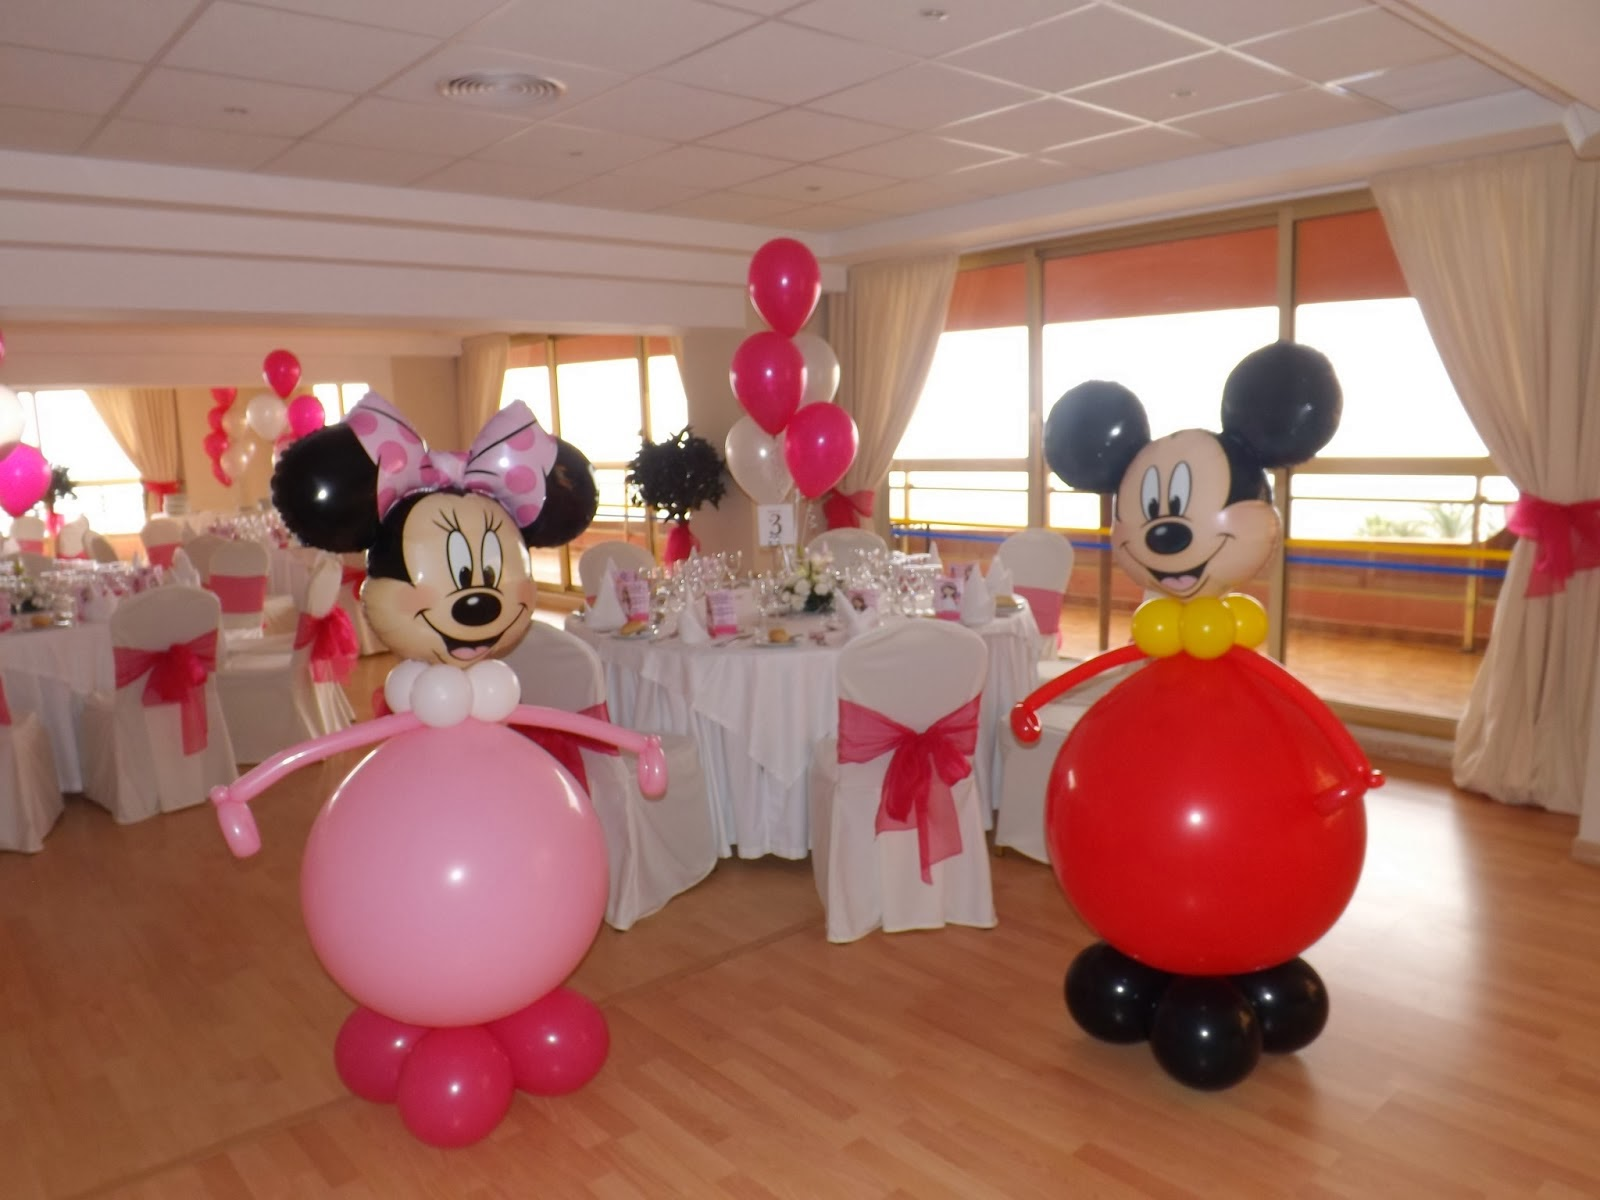 Imagenes fantasia y color ideas para fiesta infantil for Buscar decoraciones